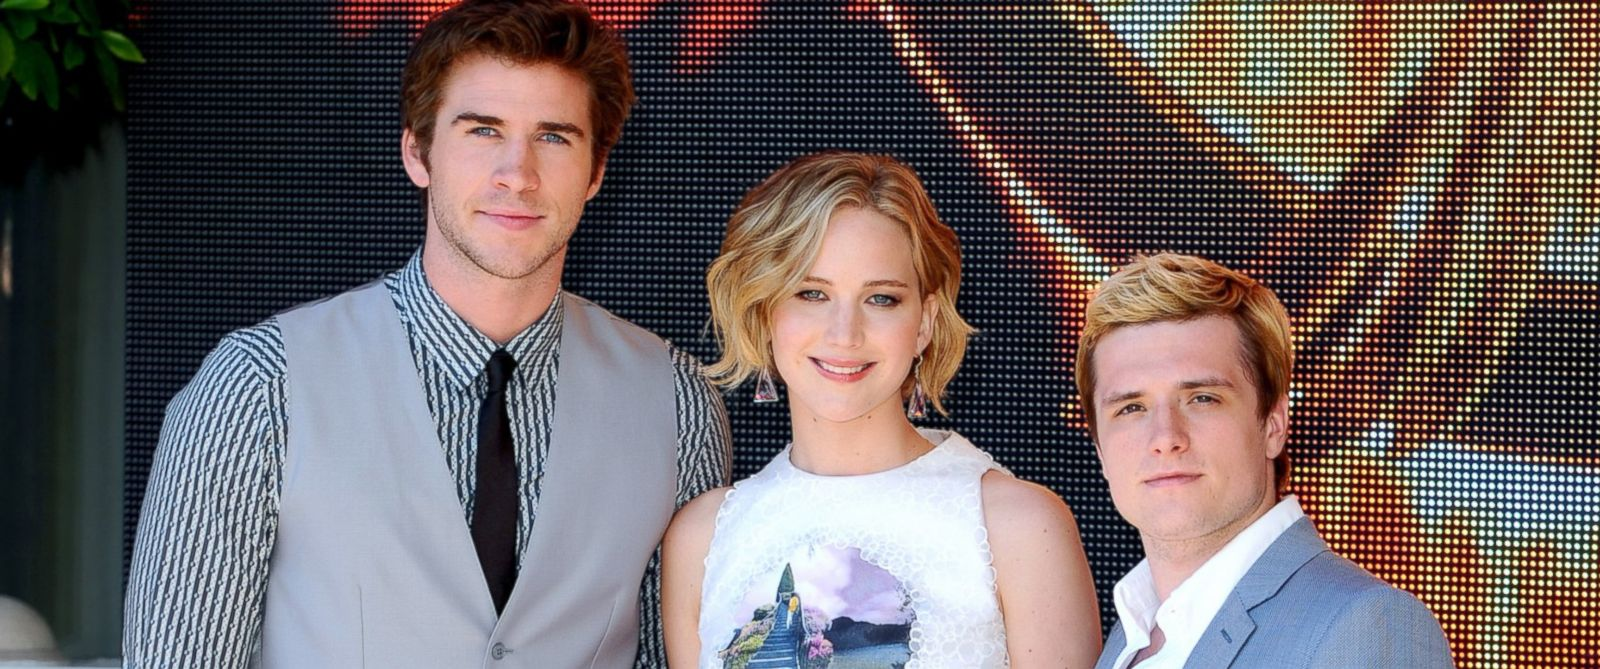 "PHOTO: Liam Hemsworth, Jennifer Lawrence and Josh Hutcherson attend ""The Hunger Games: Mockingjay Part 1"" Photocall - at the 67th Annual Cannes Film Festival, May 17, 2014, in Cannes, France."